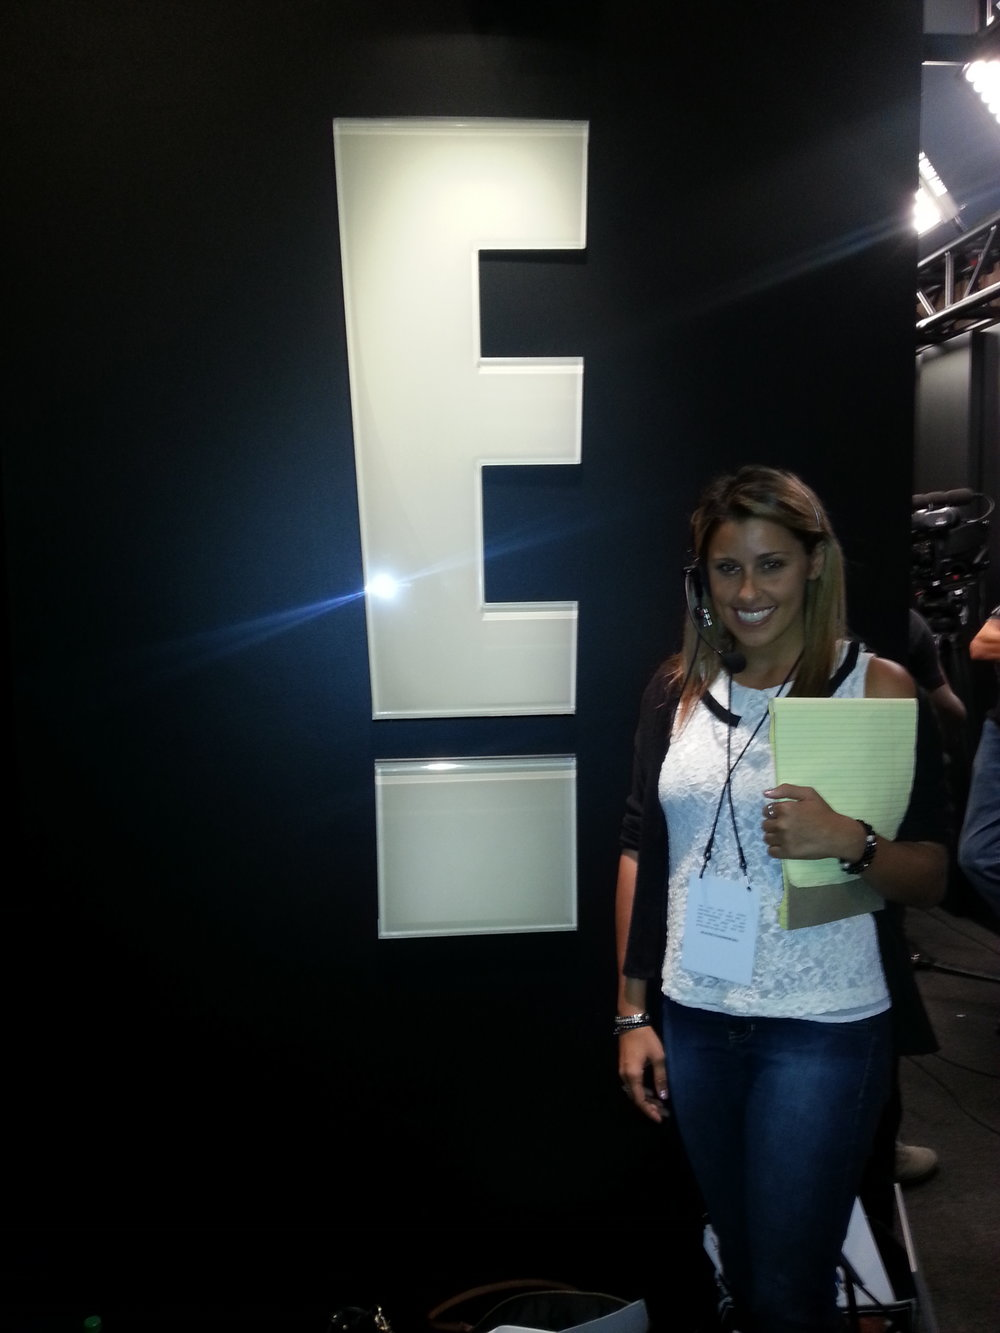 Working my very first award show at E! August 2014